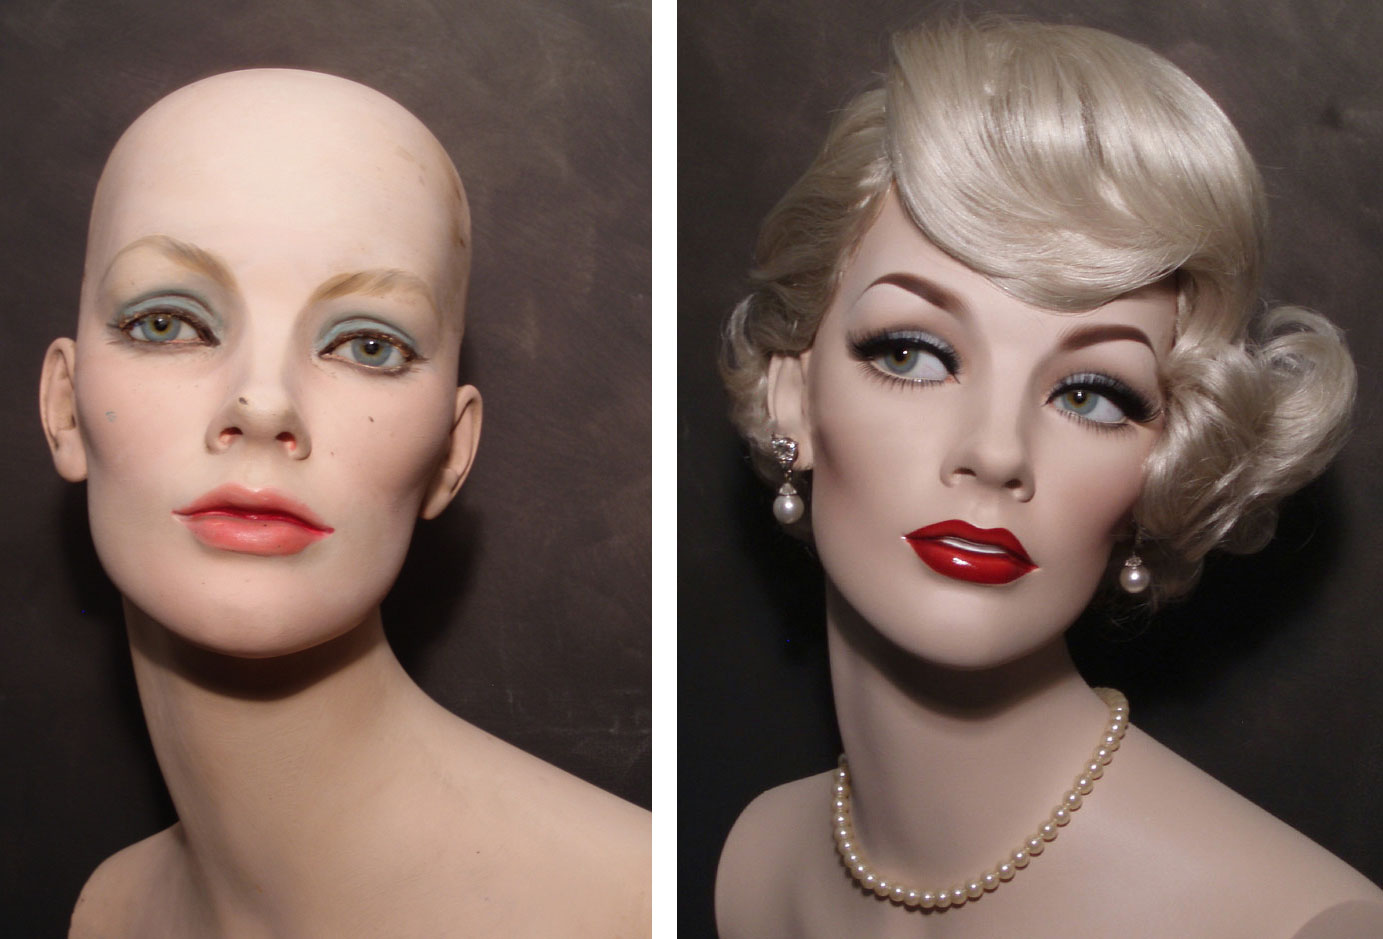 Vintage Mannequin Head Before and After